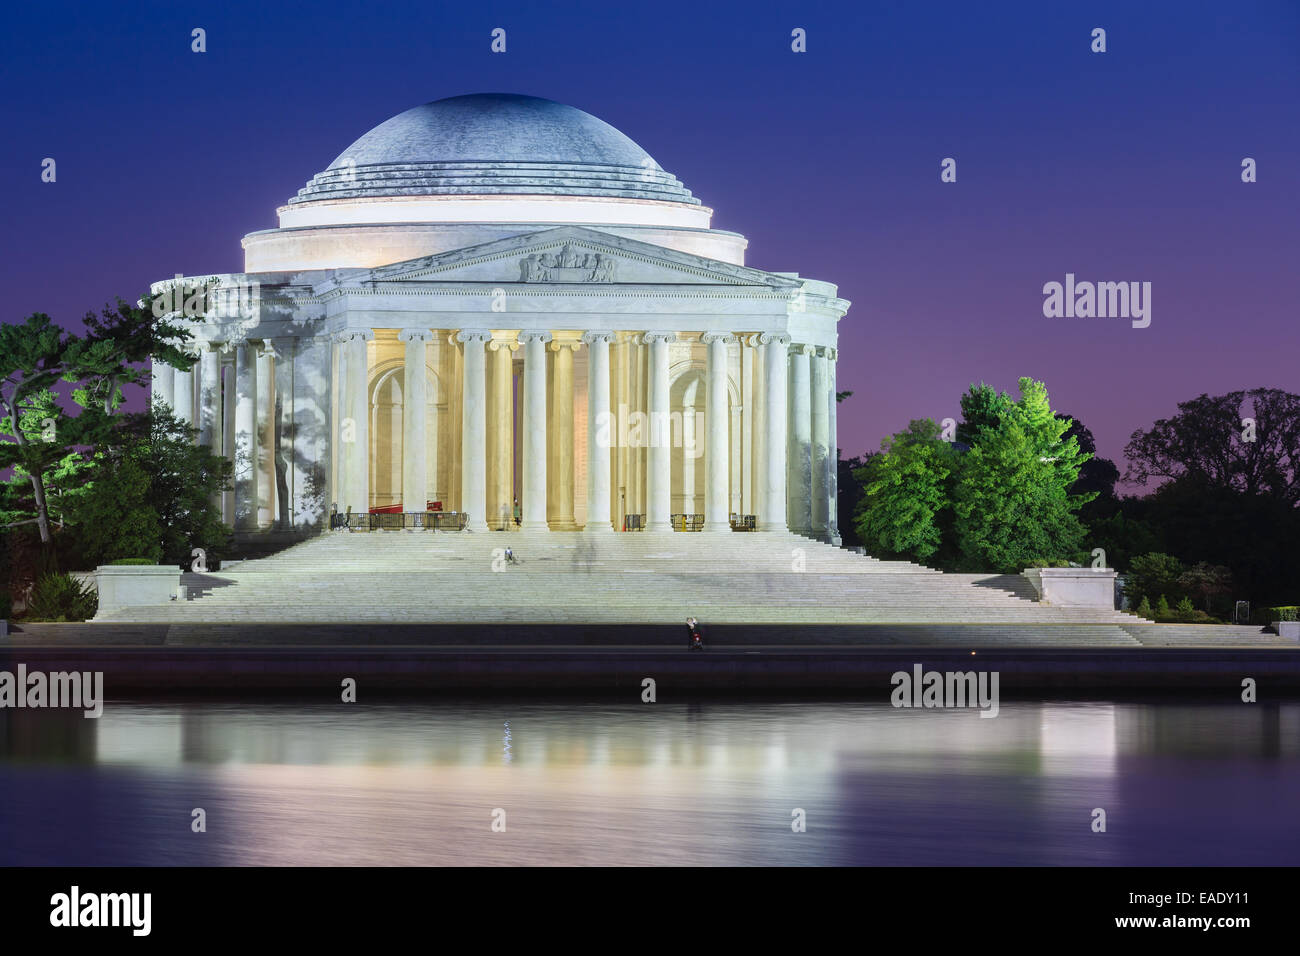 Il Thomas Jefferson Memorial è un memoriale presidenziale a Washington D.C, dedicata a Thomas Jefferson. Immagini Stock